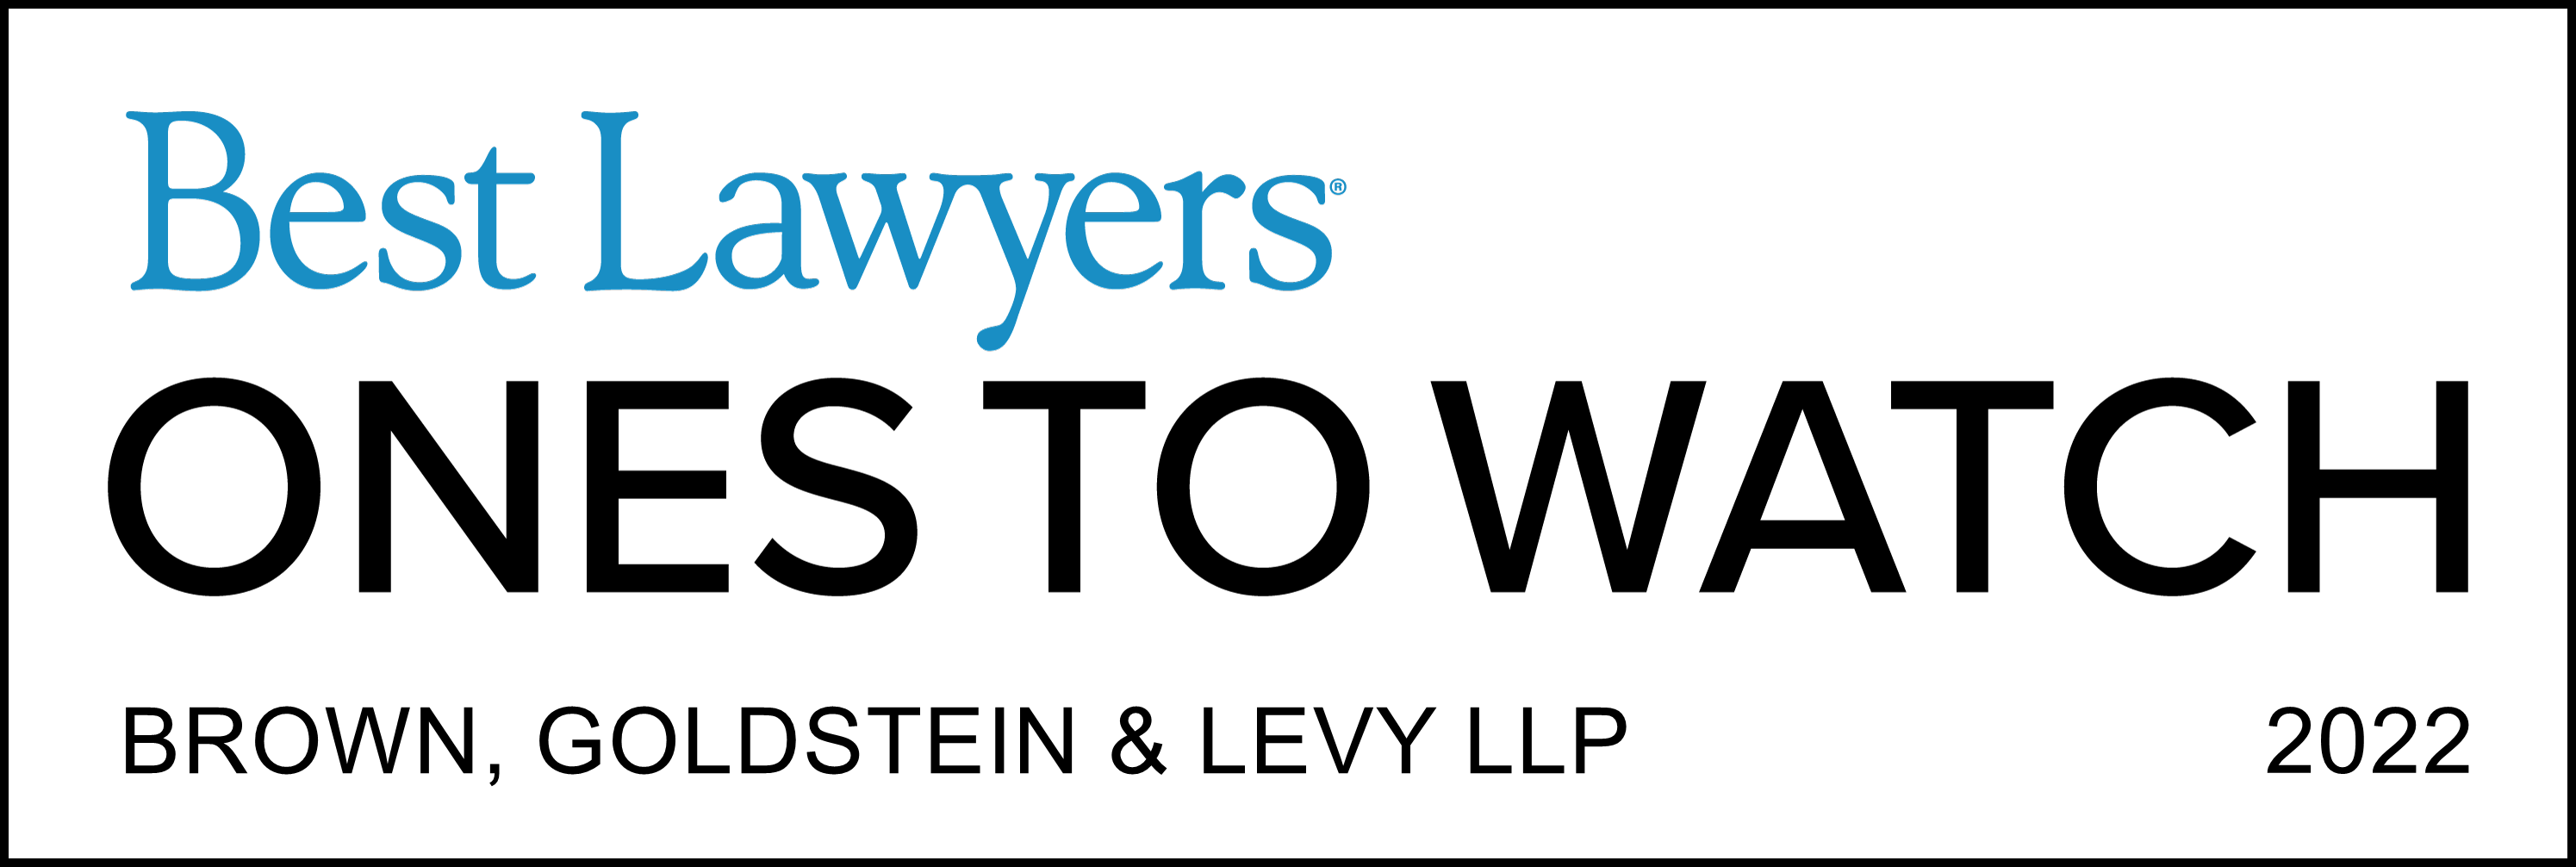 Best Lawyers Ones to Watch, Brown Goldstein & Levy LLP, 2022